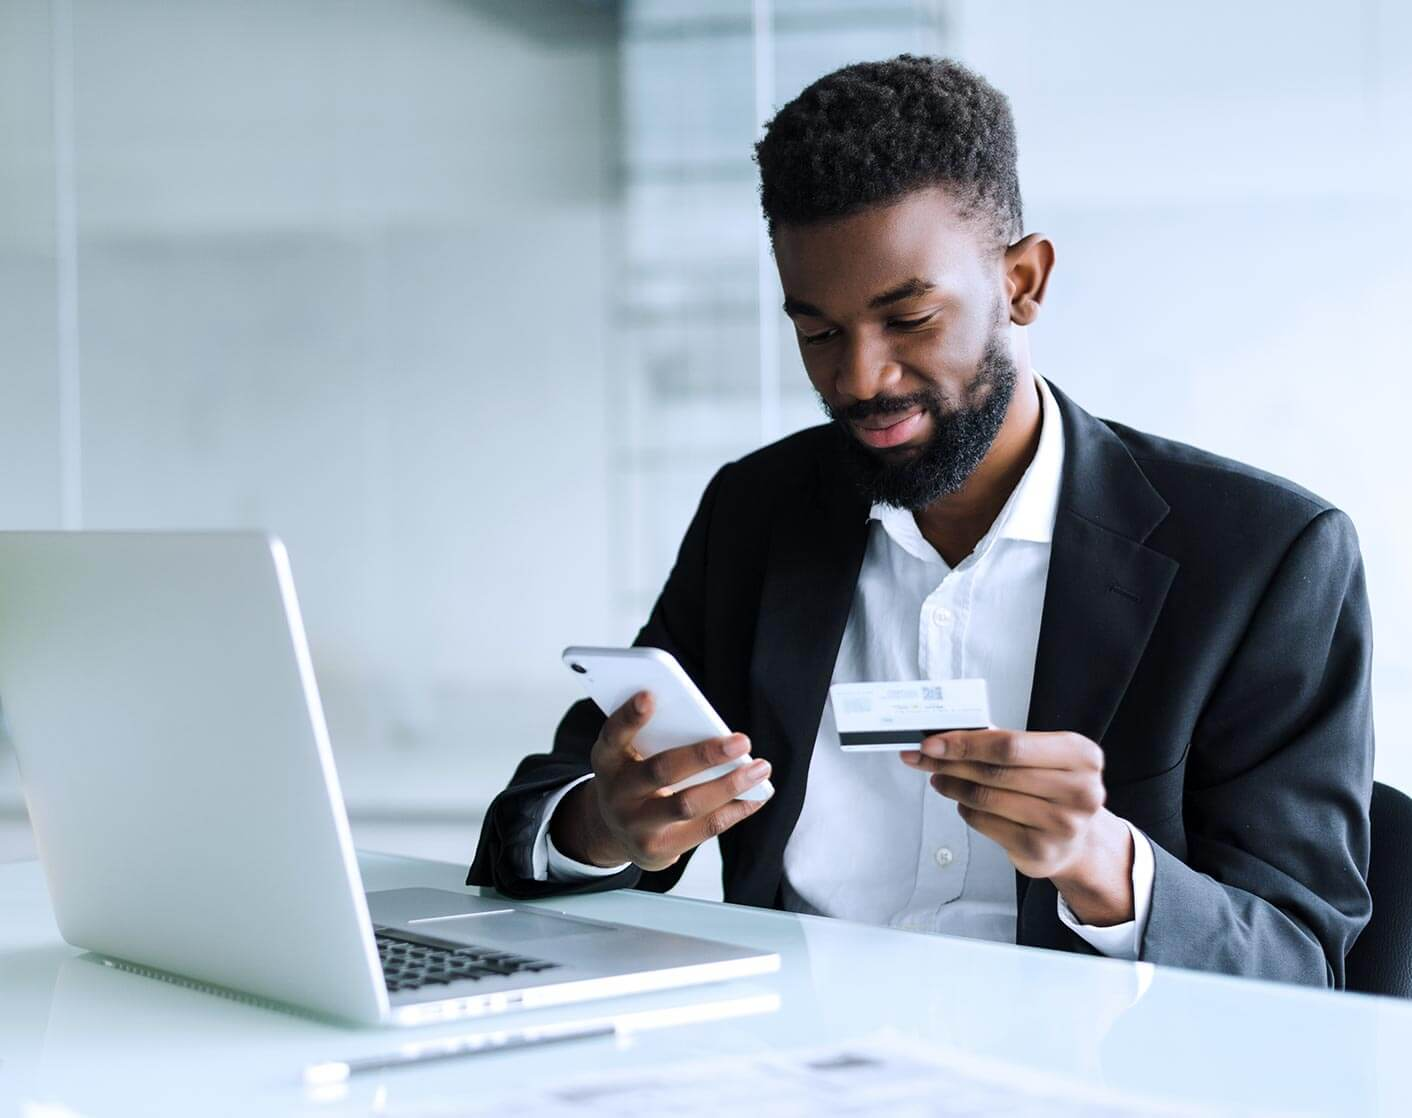 black man in suit jacket in front of laptop looking at phone holding credit card